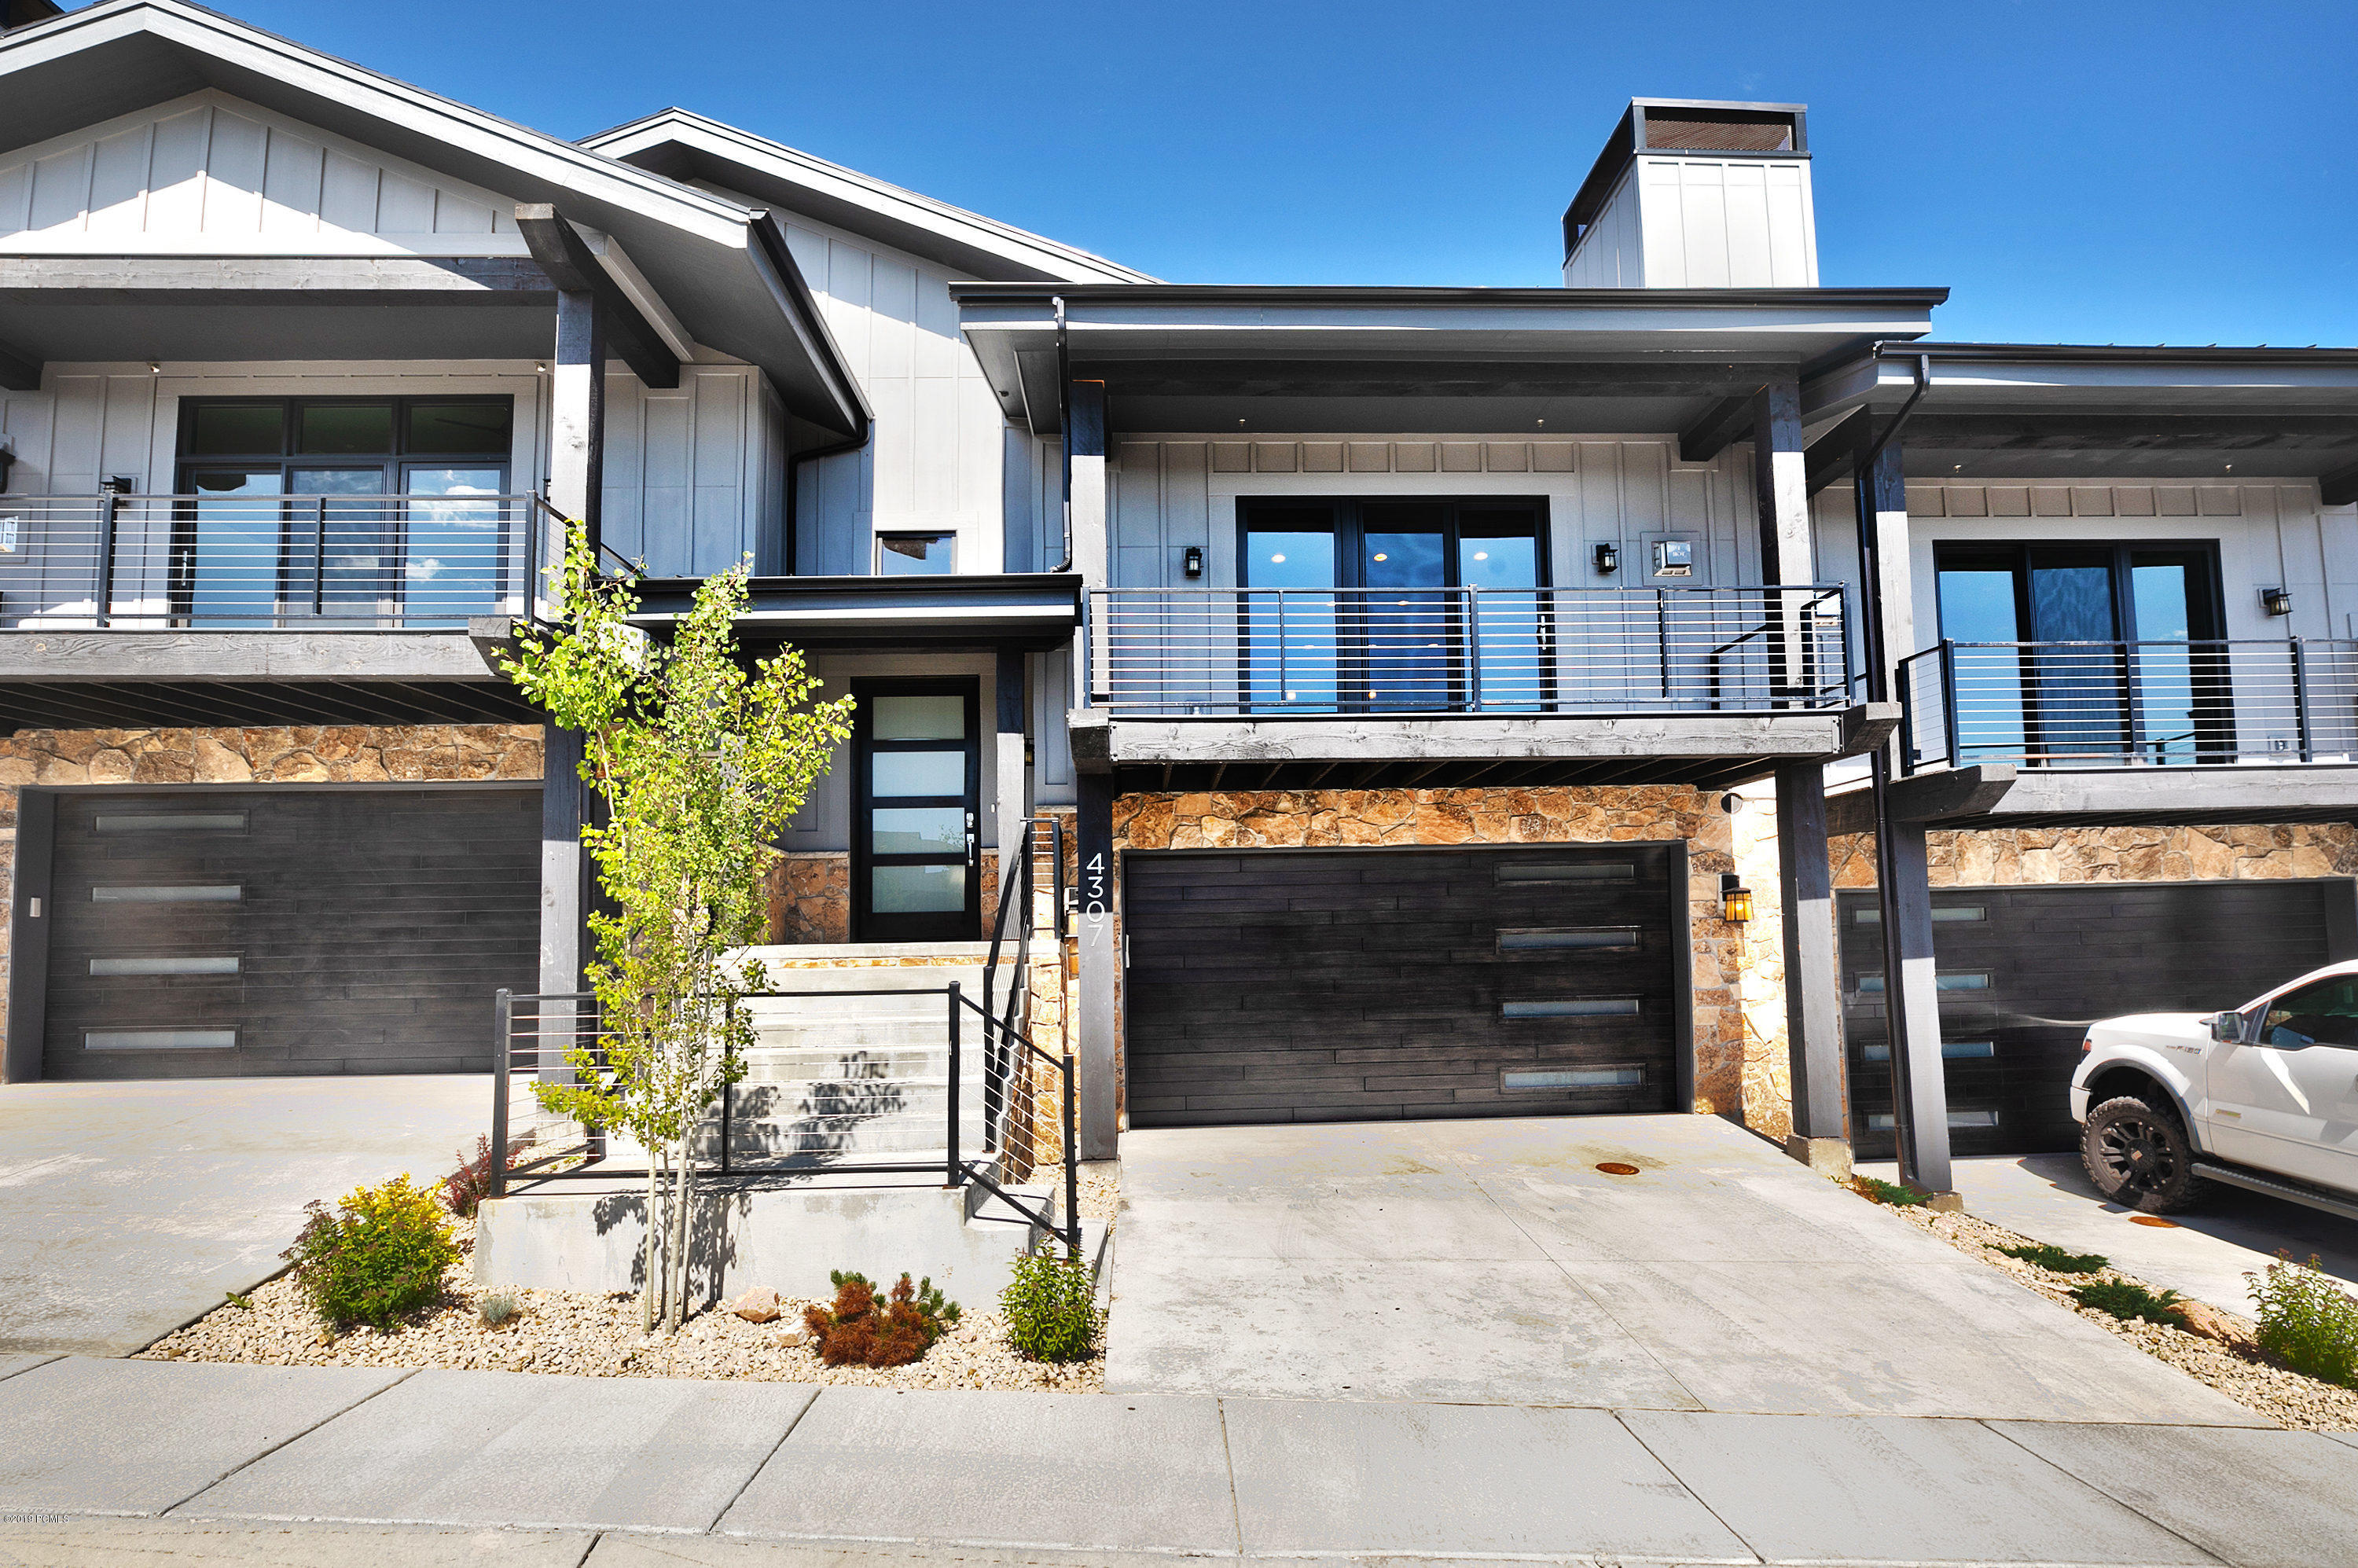 4307 Holly Frost Court, Park City, Utah 84098, 4 Bedrooms Bedrooms, ,3 BathroomsBathrooms,Condominium,For Sale,Holly Frost,20190109112430415765000000